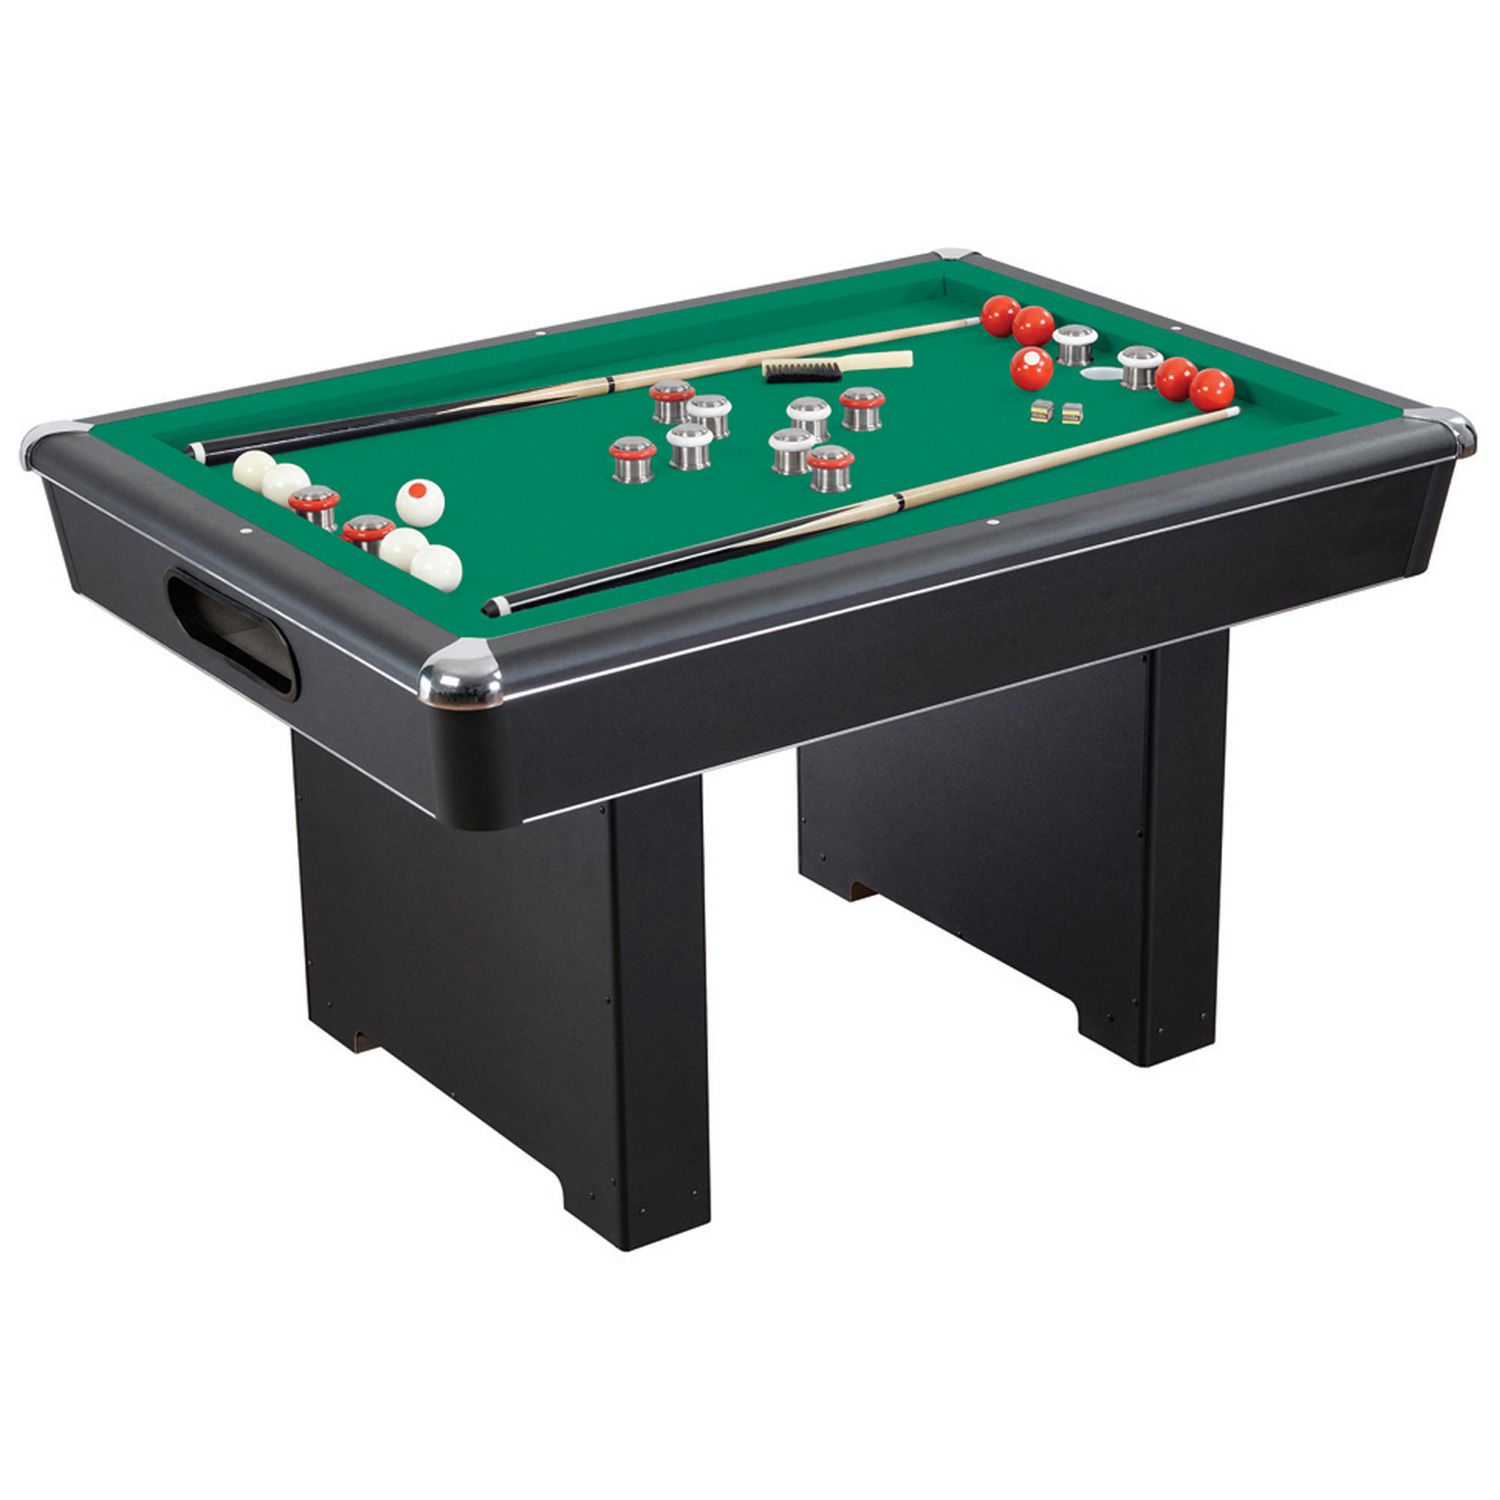 pro cloth american table blue deluxe liberty bed store play mdf the with home in strikeworth billiard pool games use tables